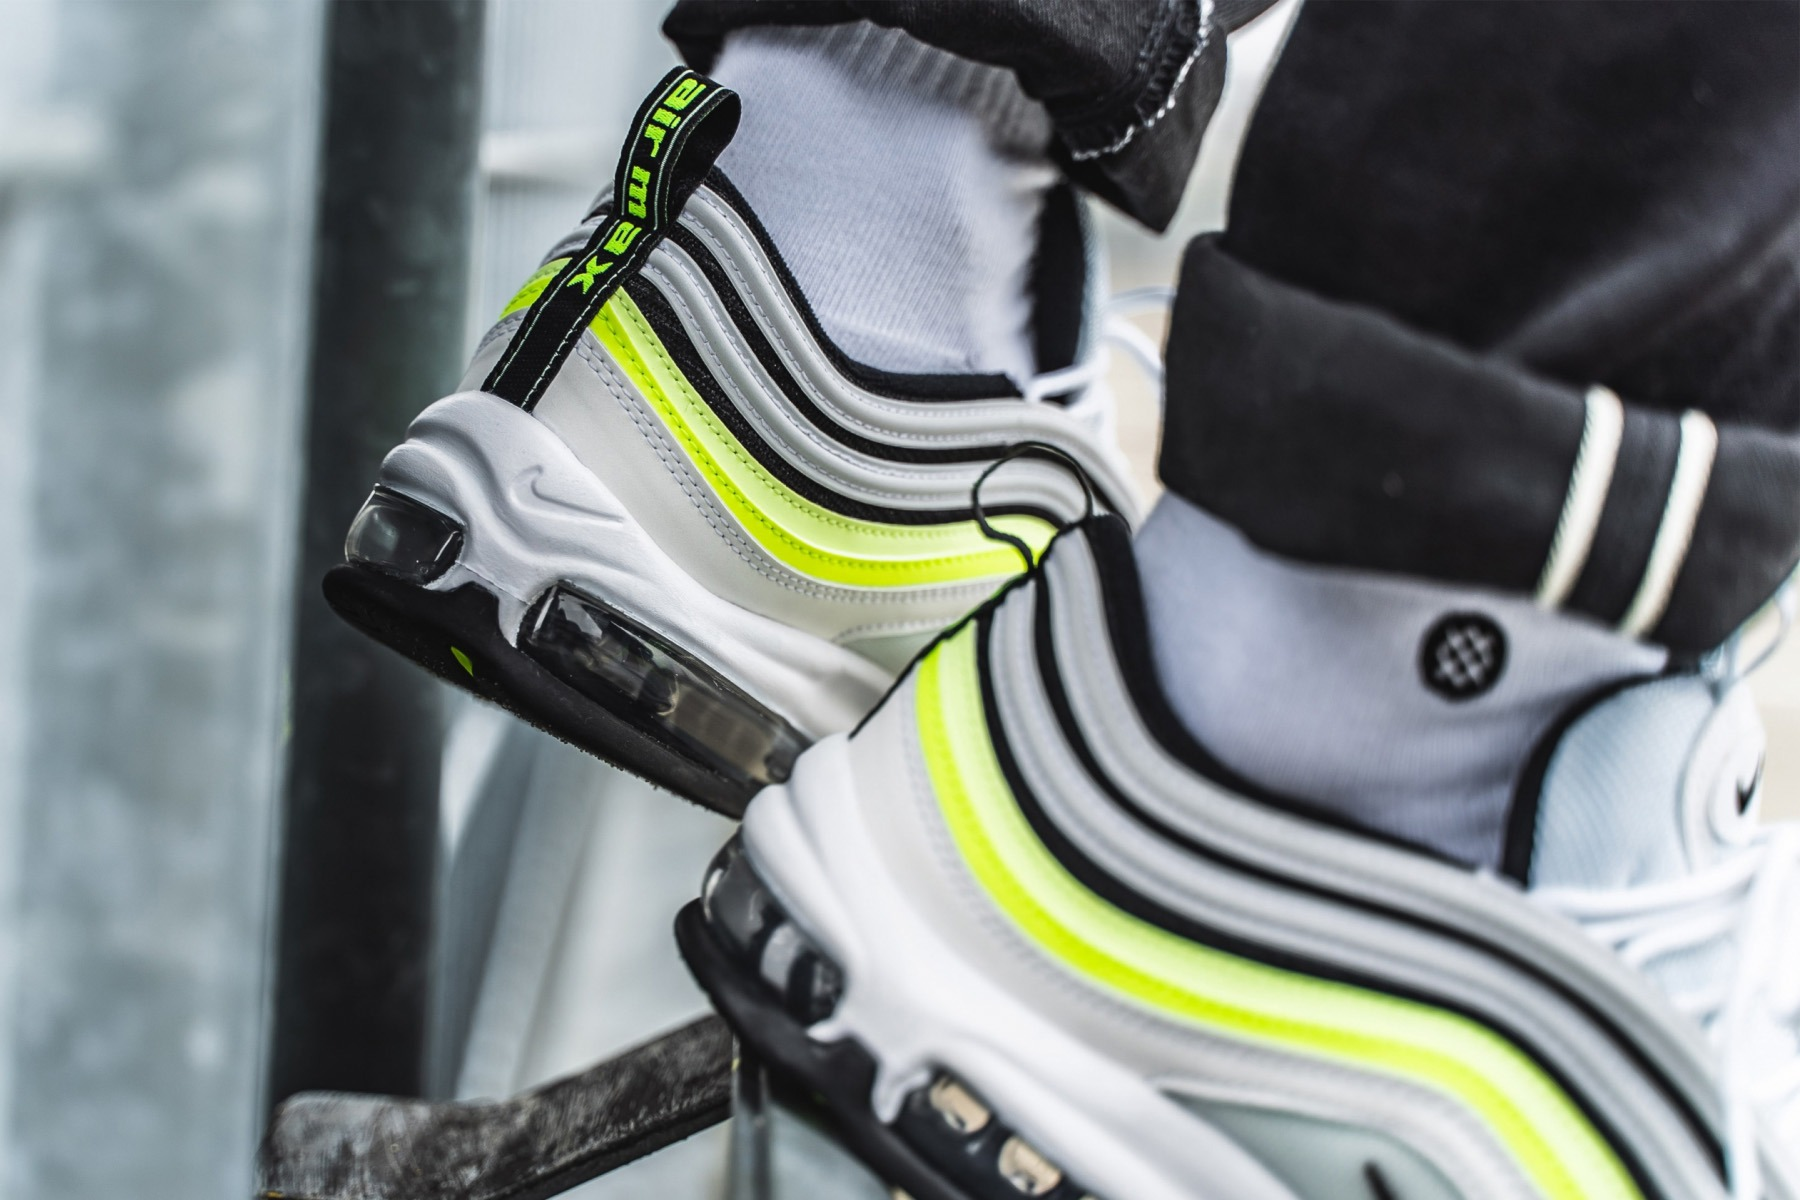 b87bd7fb Nike Sportswear has lit a collection of kicks in volt for the spring  season. Included in the collection is the Air Max 97, which applies volt  and barely ...